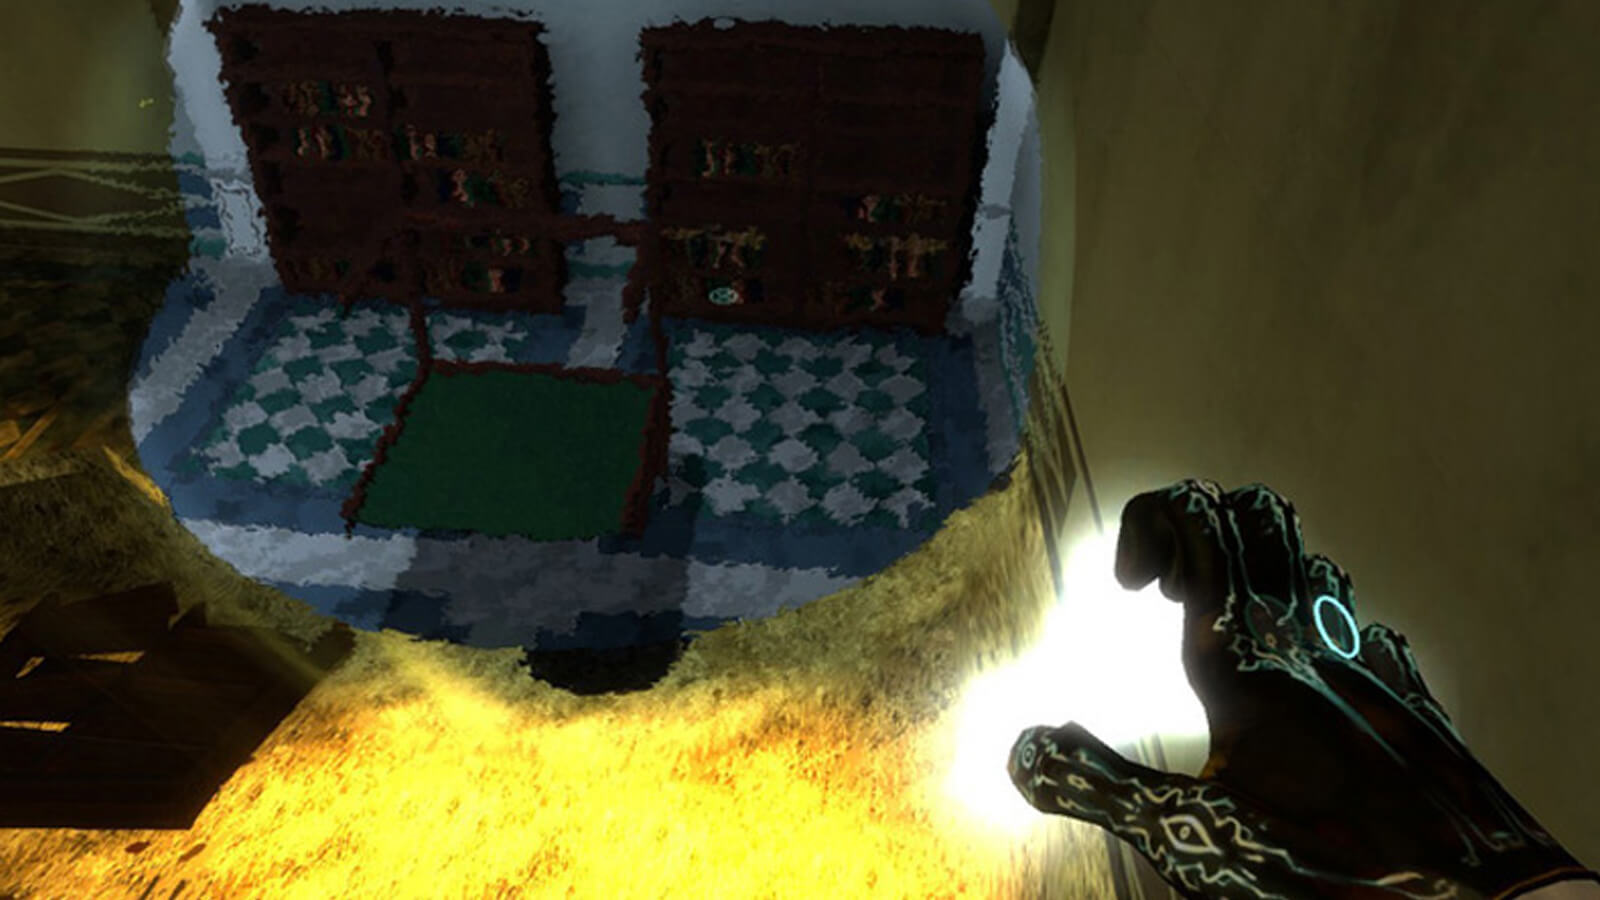 The player's hand is seen illuminated with runes as a shimmering image of shelving and a table appears